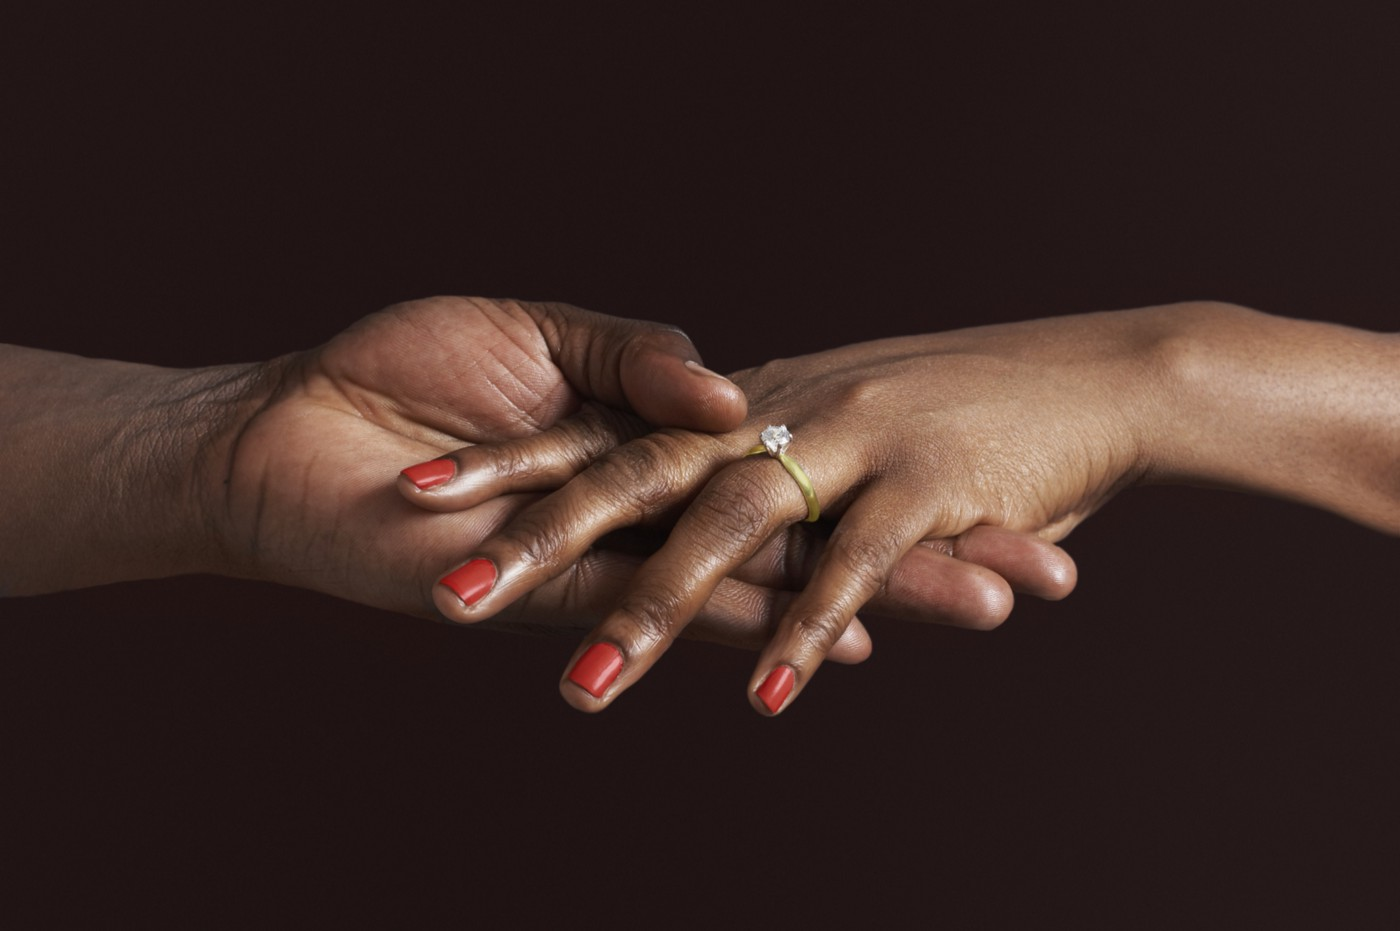 Closeup of a Black woman's hand with an engagement ring.